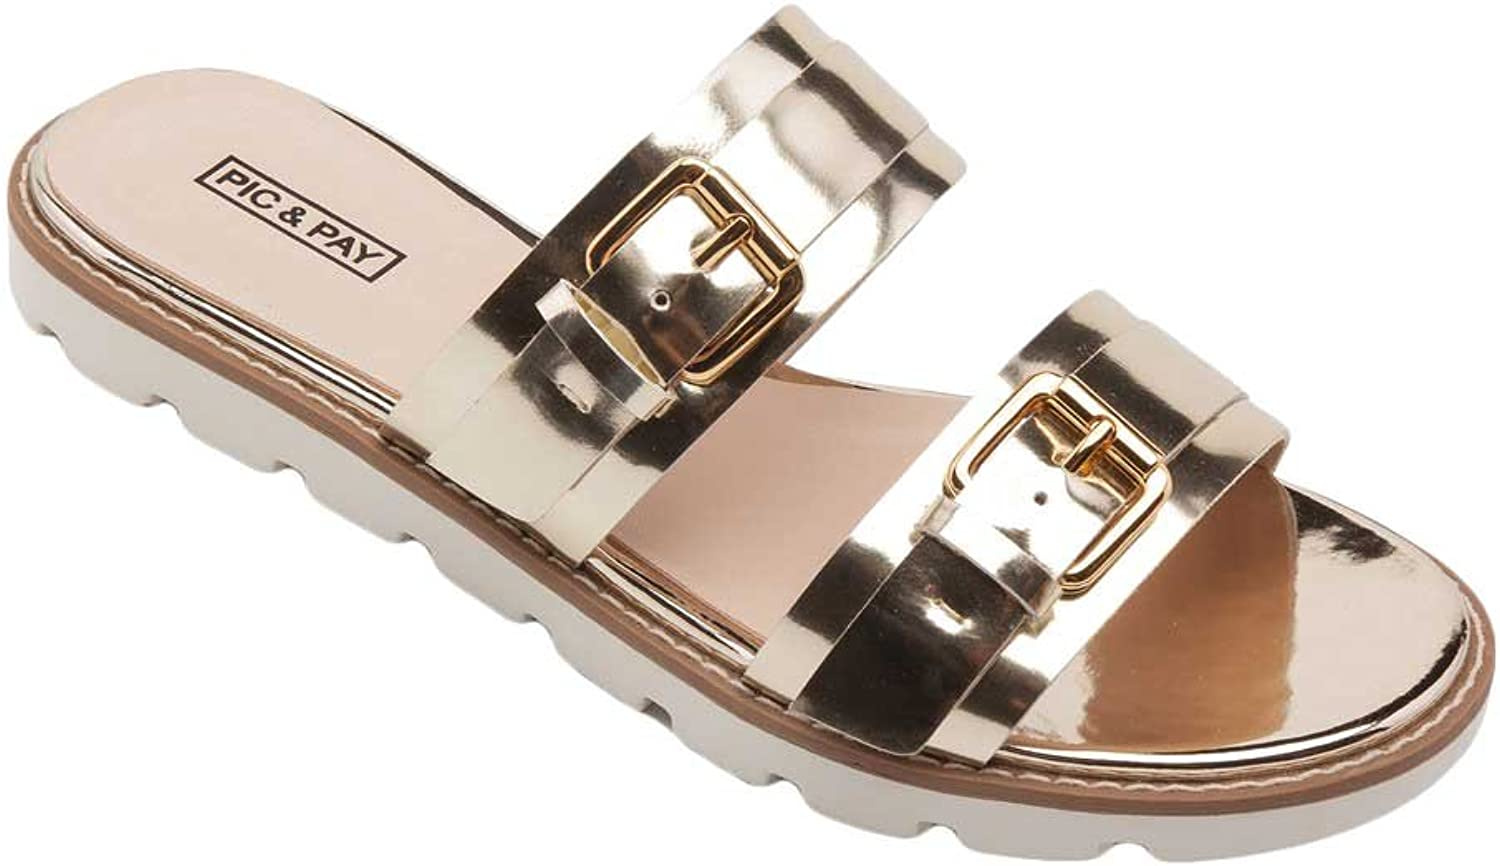 Pic Pay Cairo Women's Sandals - Leather Dual Strap Flat Sandal gold Metallic Leather 6.5M